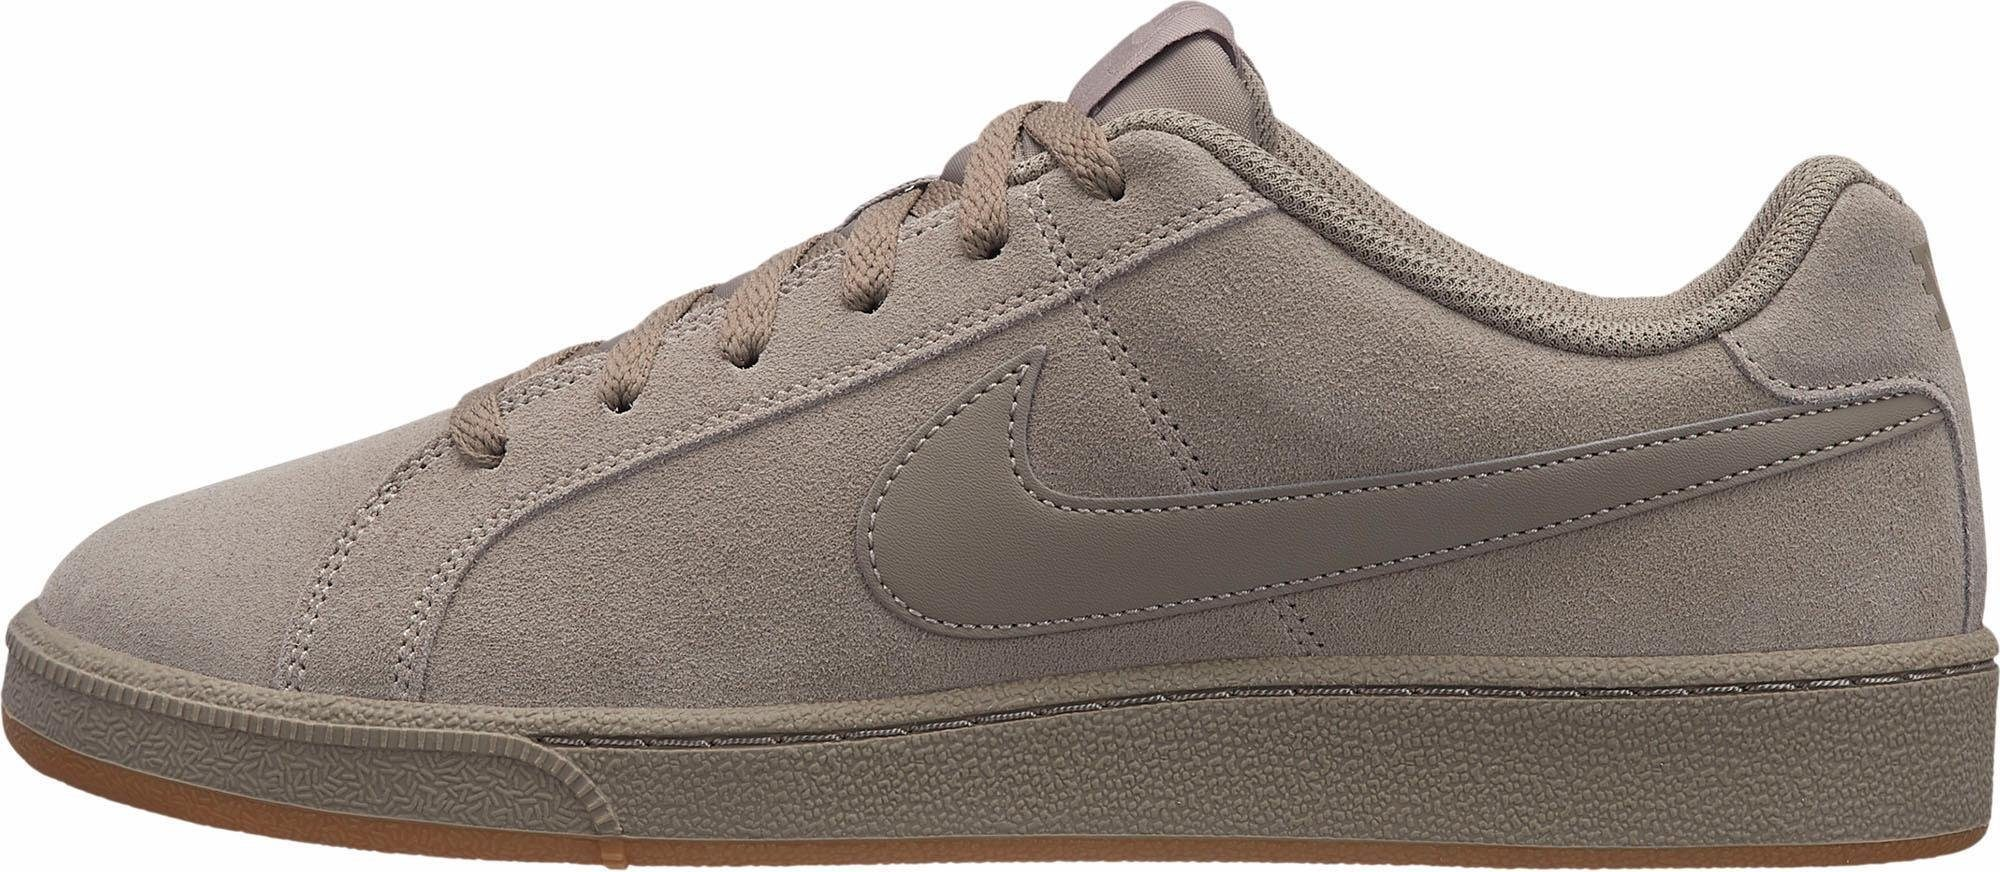 Nike Sportswear COURT ROYALE SUEDE Sneaker  taupe